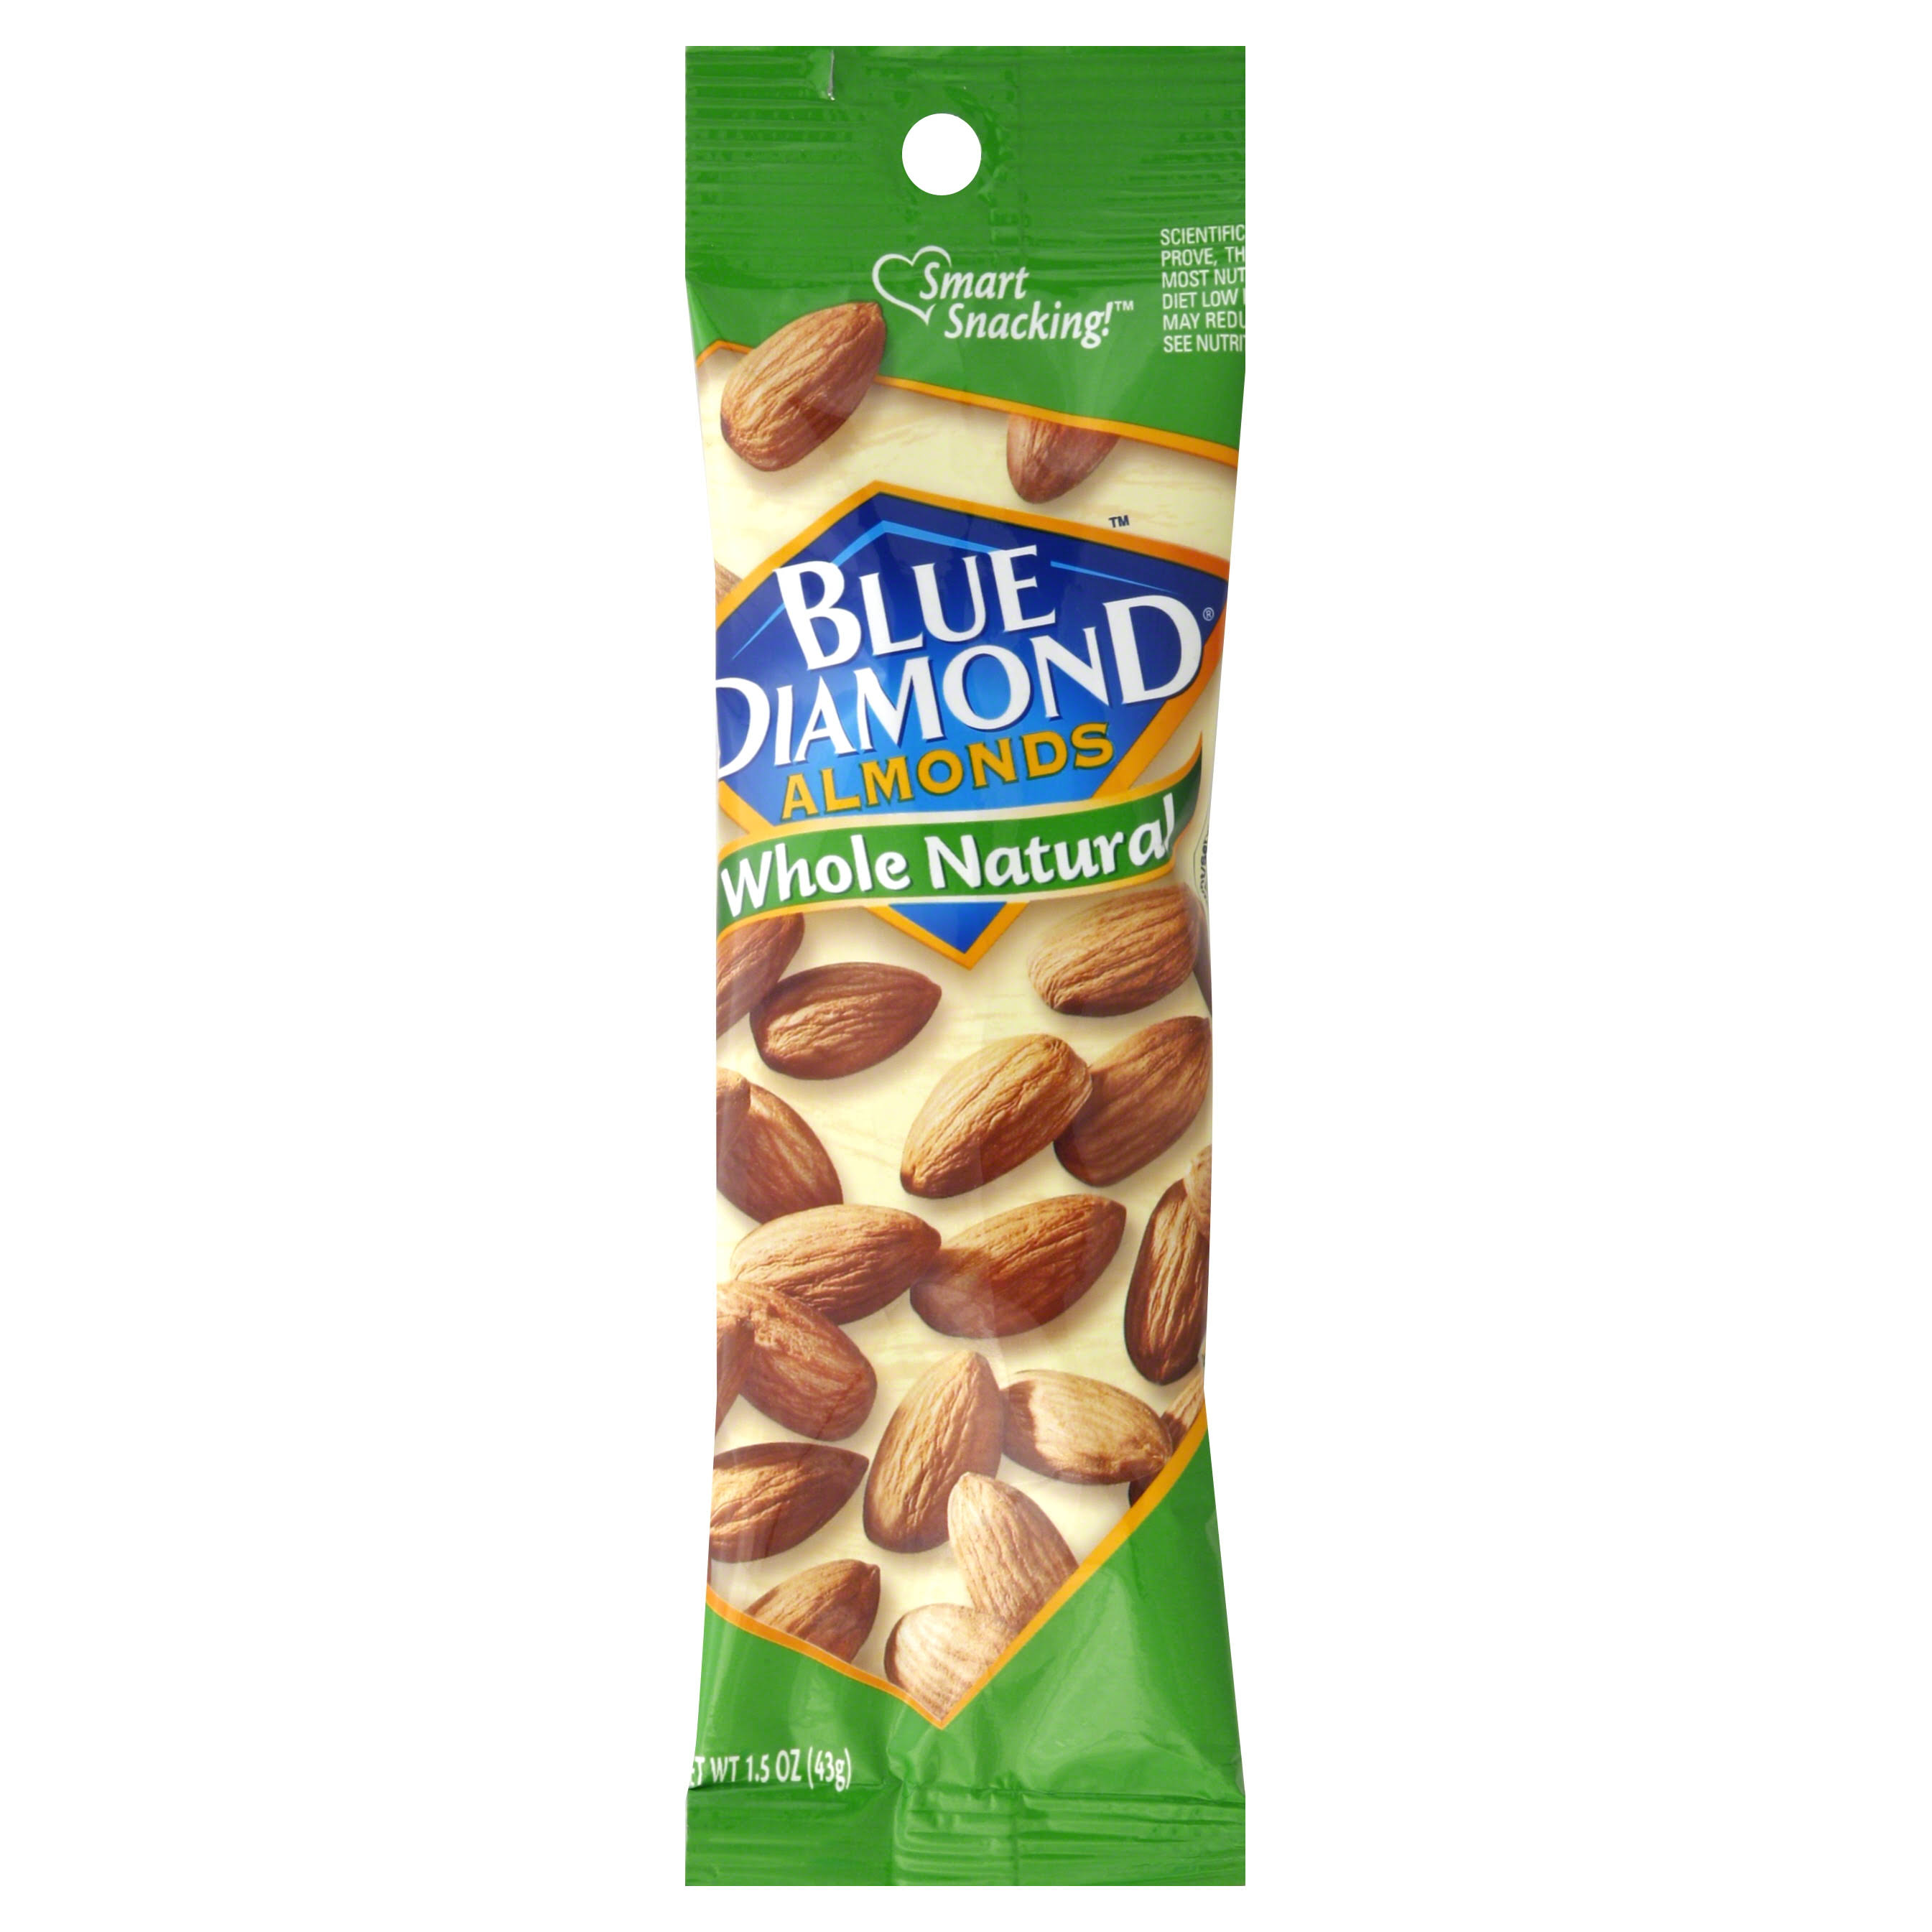 Blue Diamond Whole Natural Almonds - 1.5oz